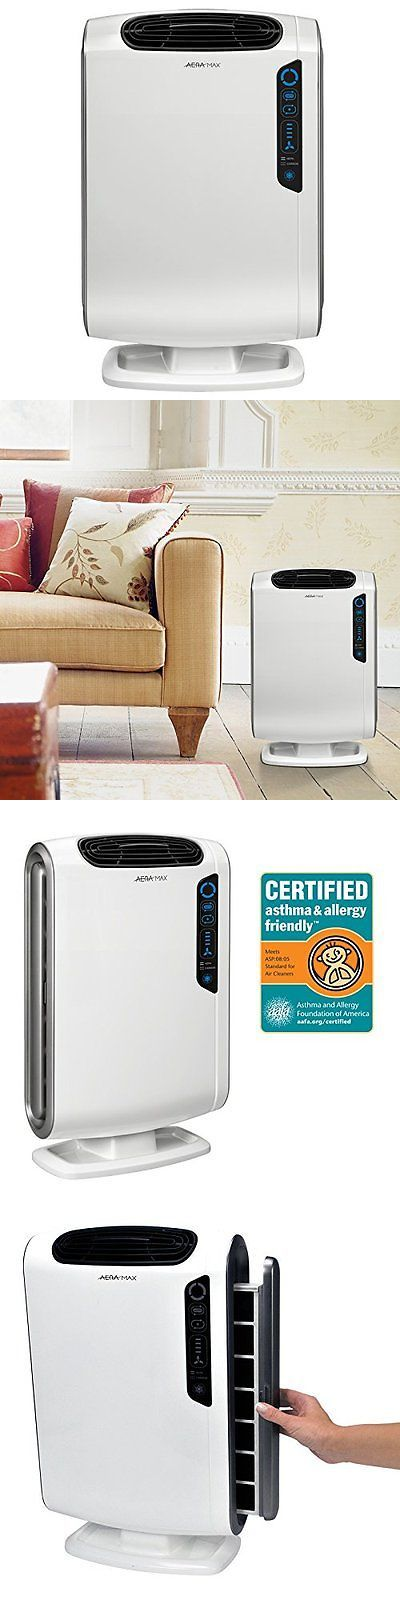 Air Purifiers 43510: Aeramax 200 Air Purifier For Allergies And Odors With True Hepa Filter And 4-Sta -> BUY IT NOW ONLY: $166.98 on eBay!